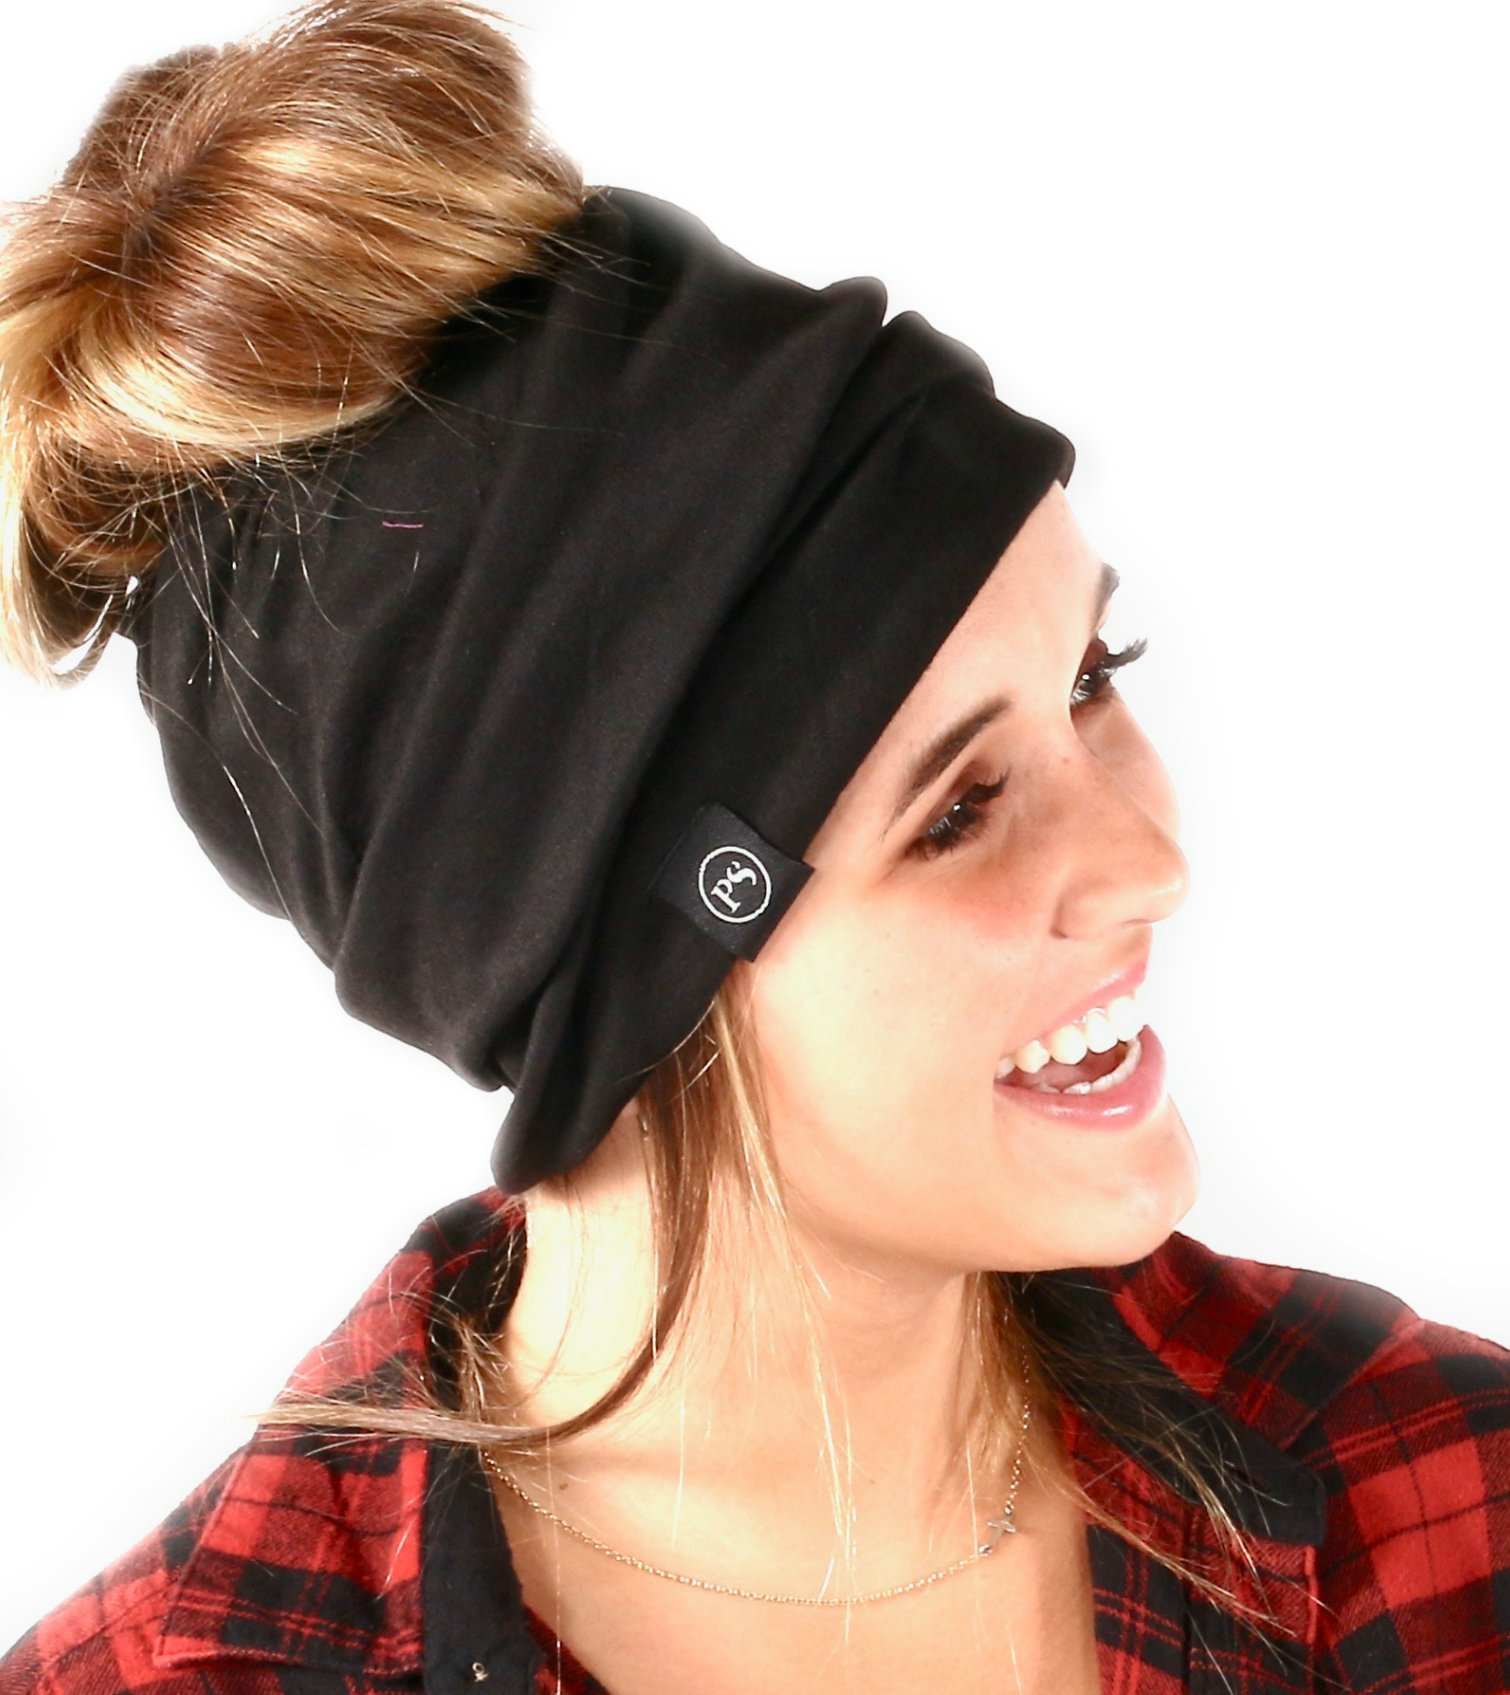 Peek a Boo Women's Beanie Slouchy Beanie with Hole for Pony Tail or Sloppy Bun perfect for Work Out by Pretty Simple (Black)